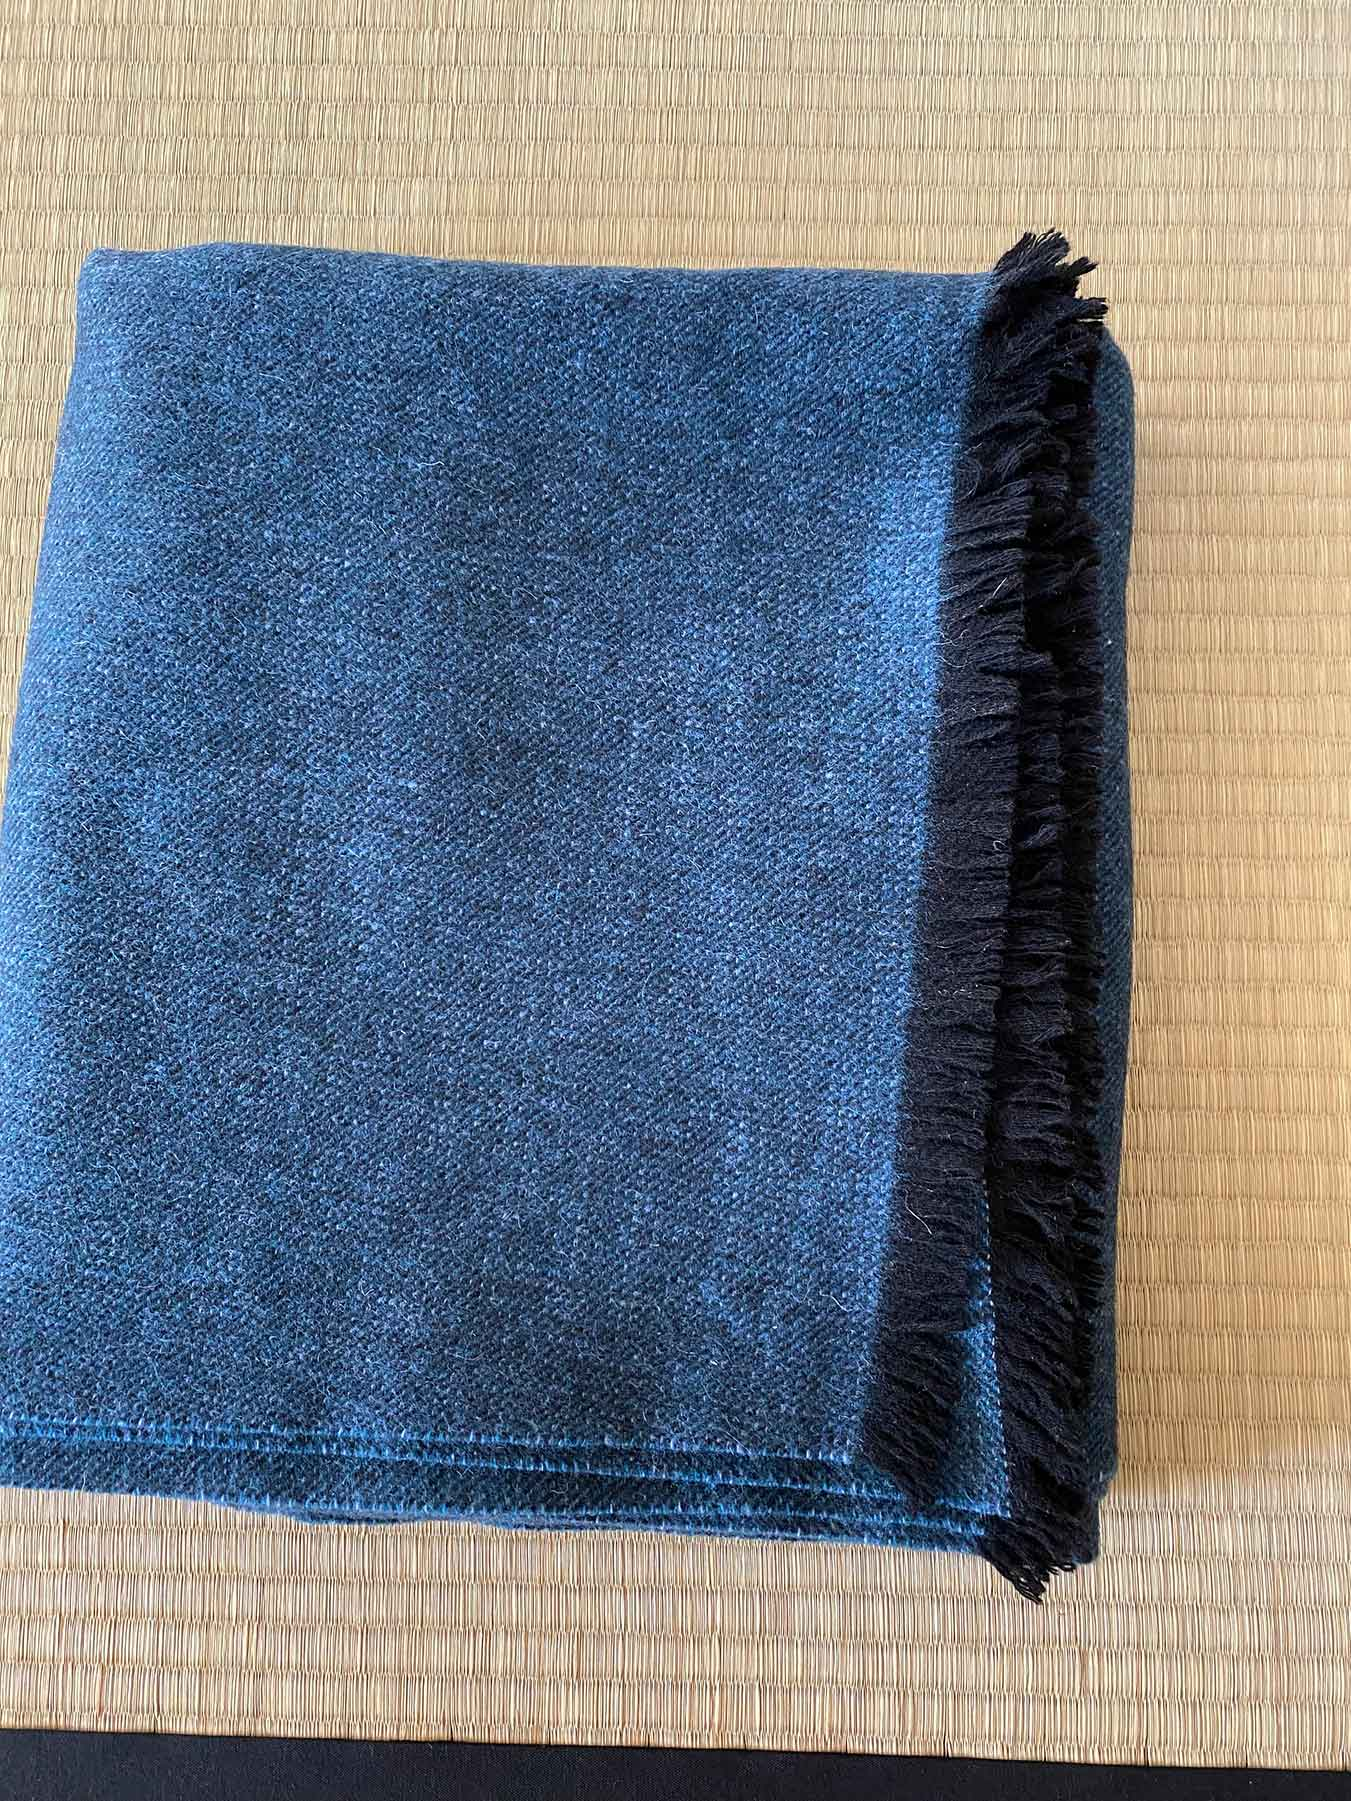 Cashmere Wool Throw Blue 3